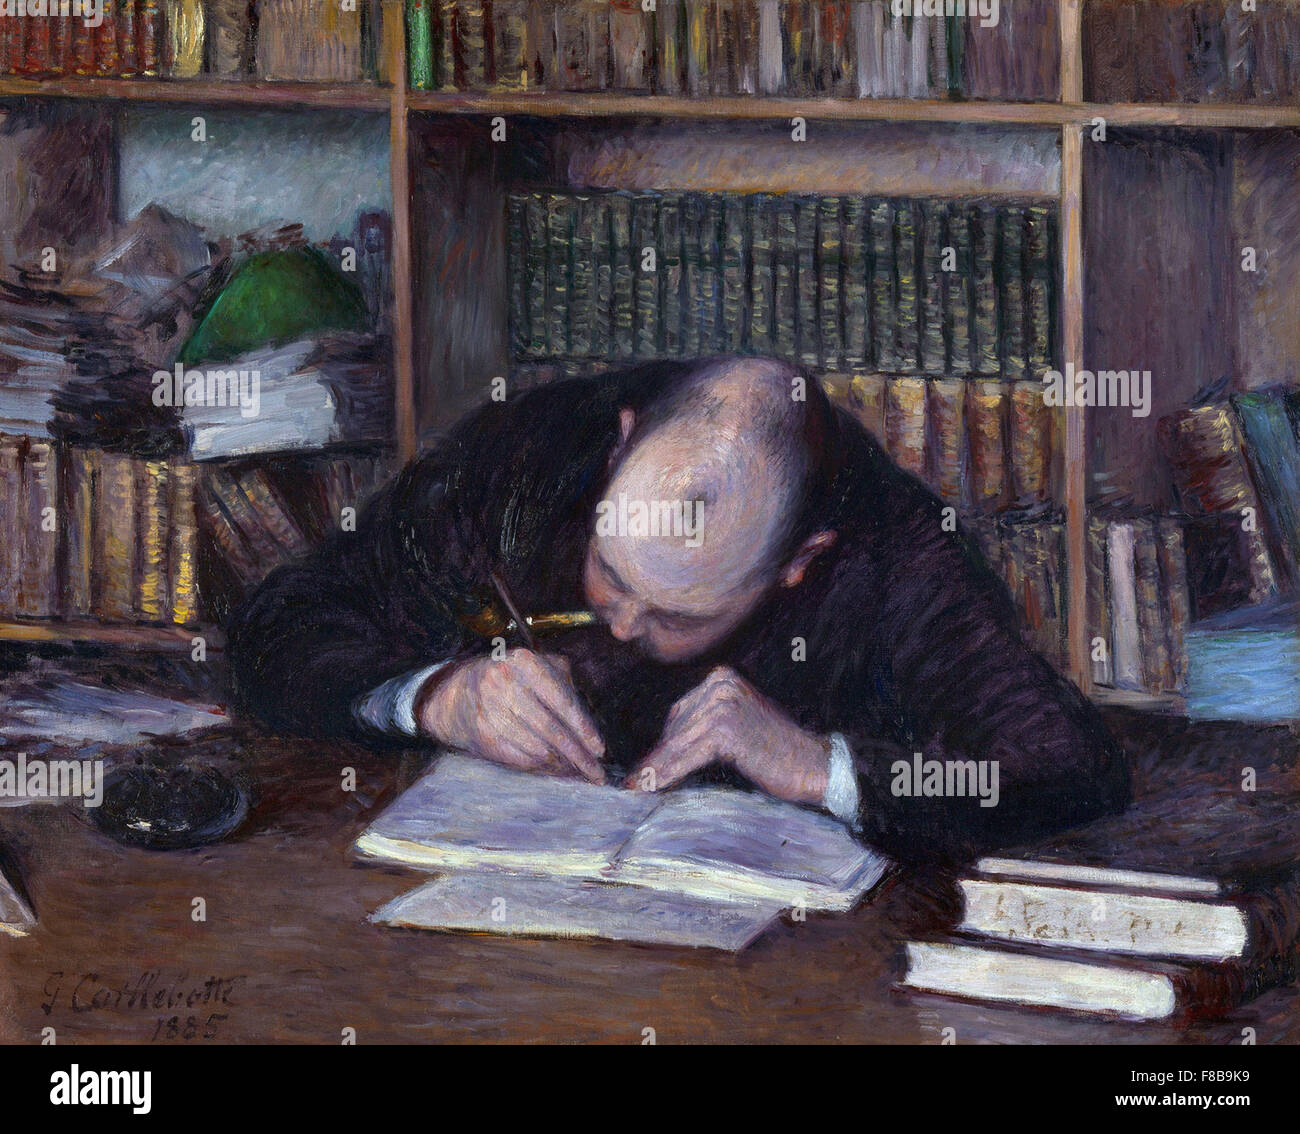 Caillebotte Stock Photos Amp Caillebotte Stock Images Alamy